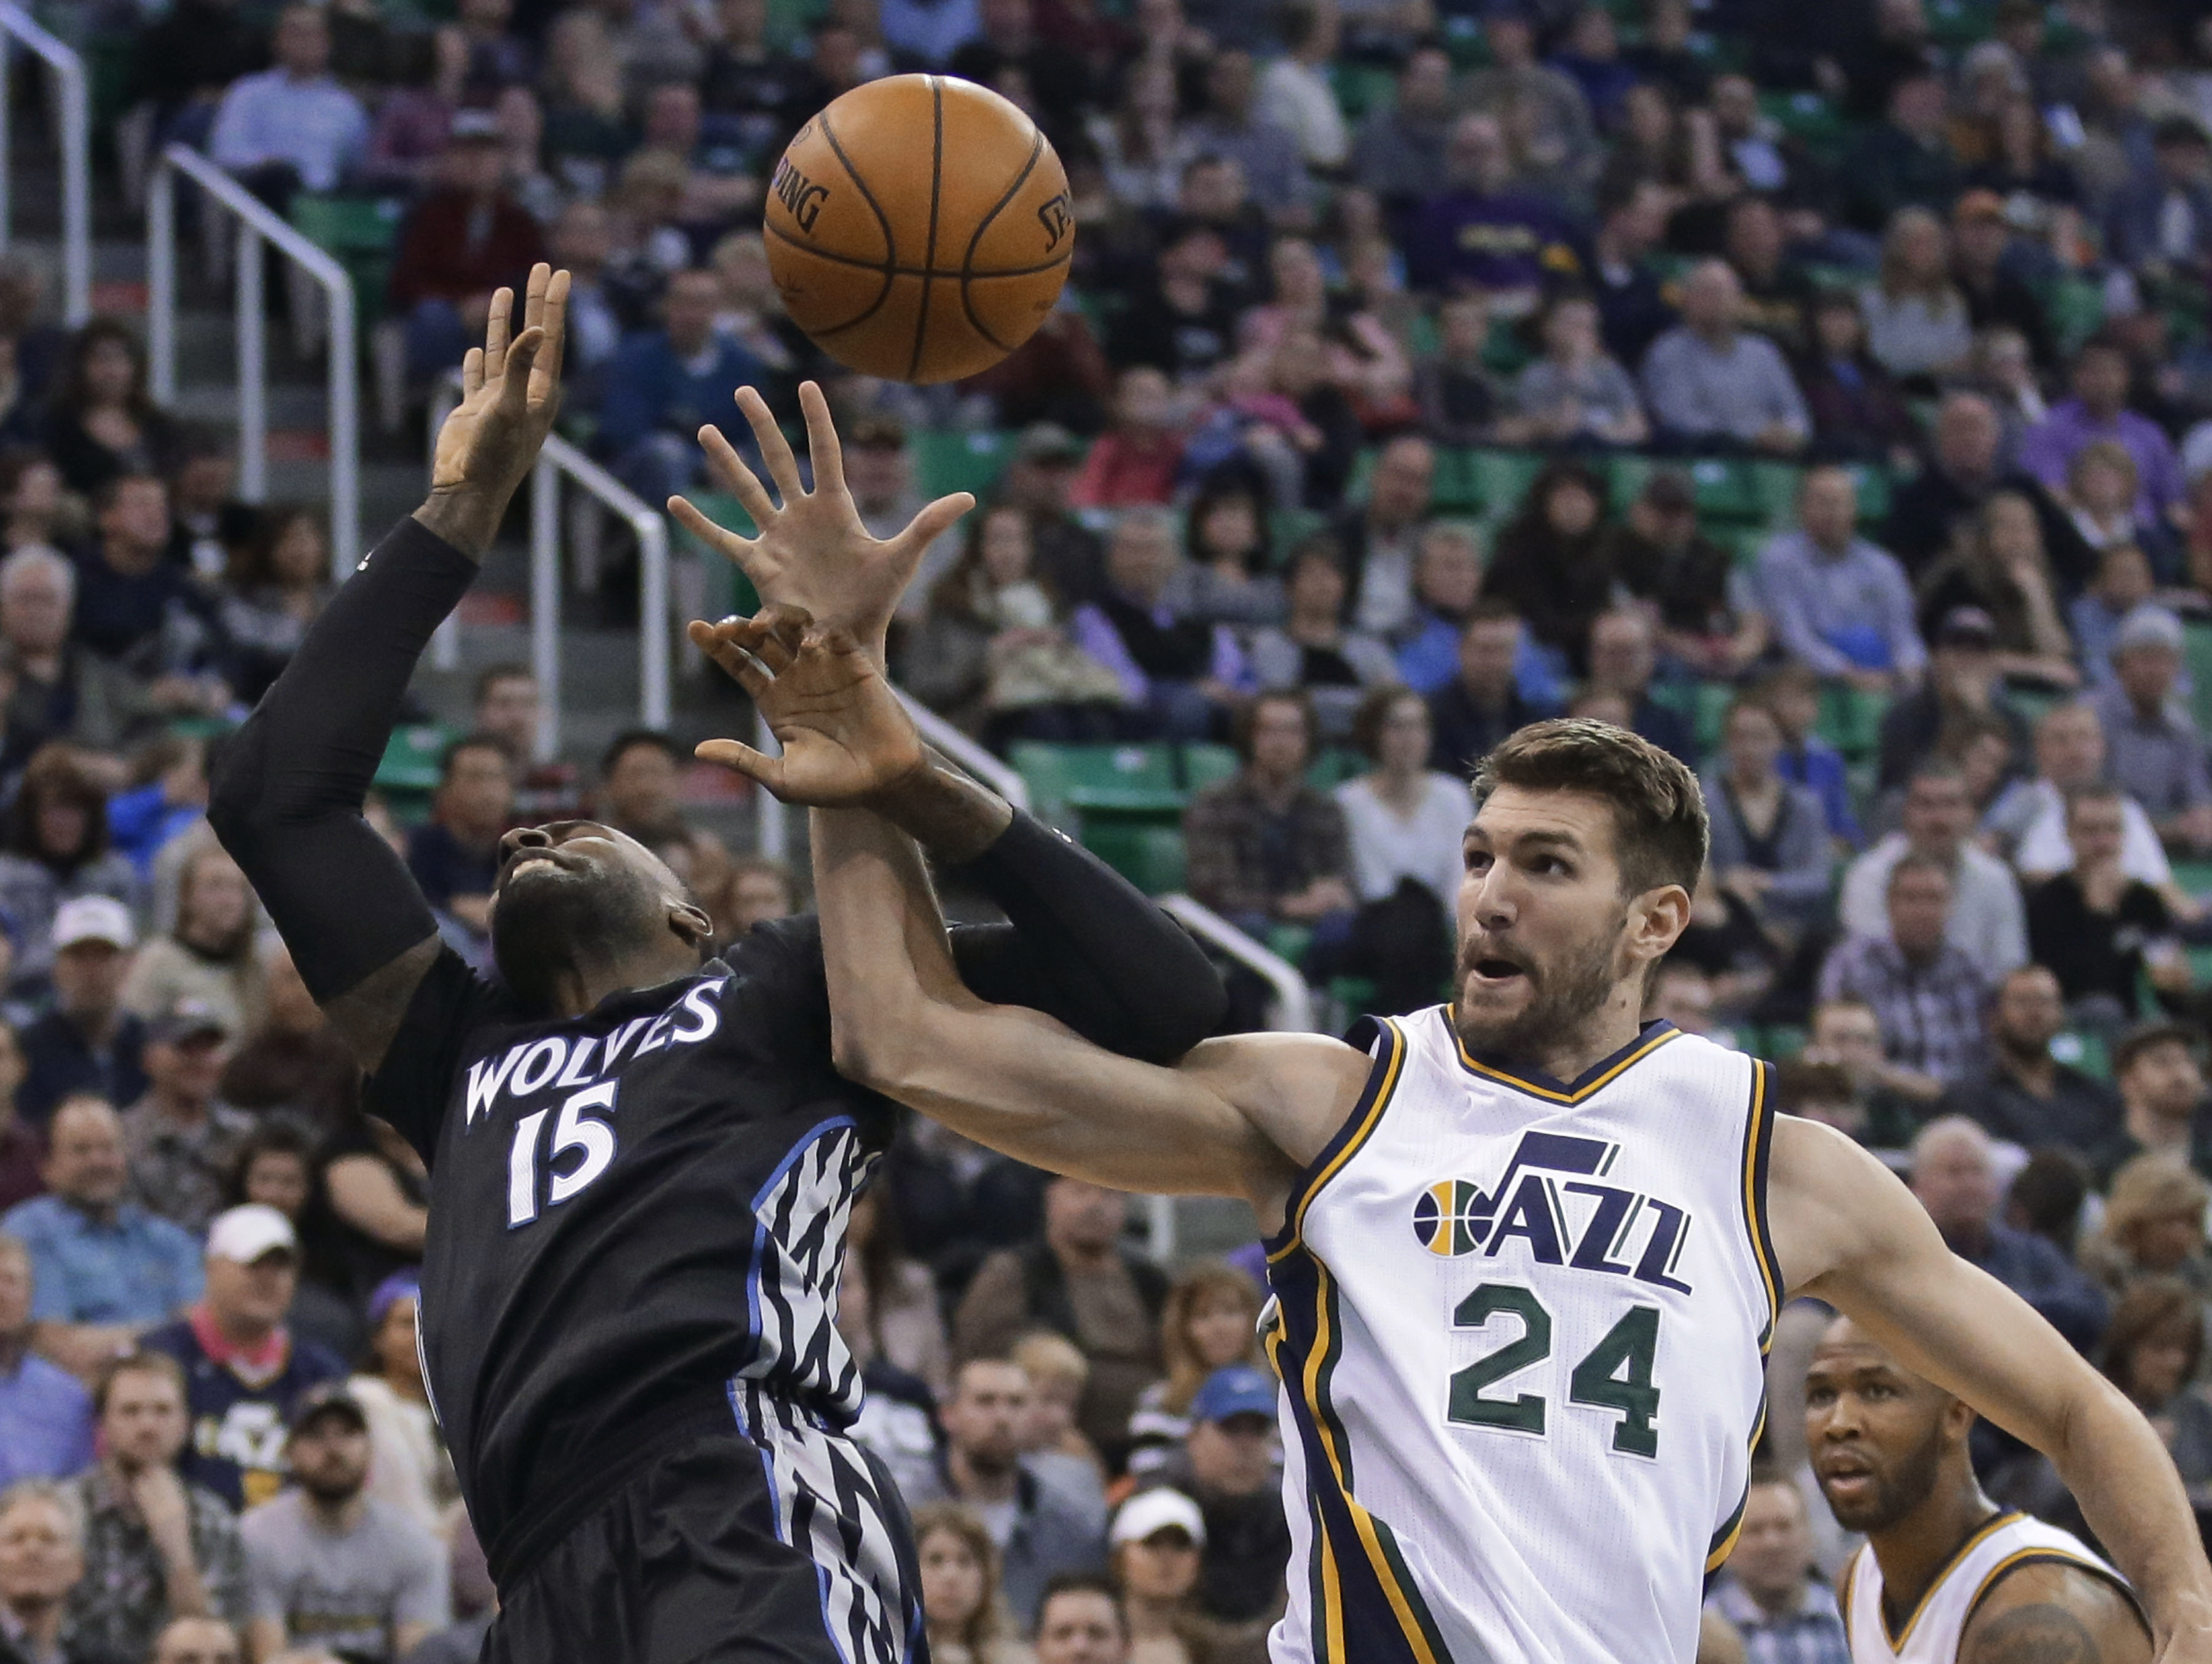 Minnesota Timberwolves forward Shabazz Muhammad (15) and Utah Jazz center Jeff Withey (24) compete for a rebound during the second quarter of an NBA basketball game Friday, Jan. 29, 2016, in Salt Lake City. (AP Photo/Rick Bowmer)